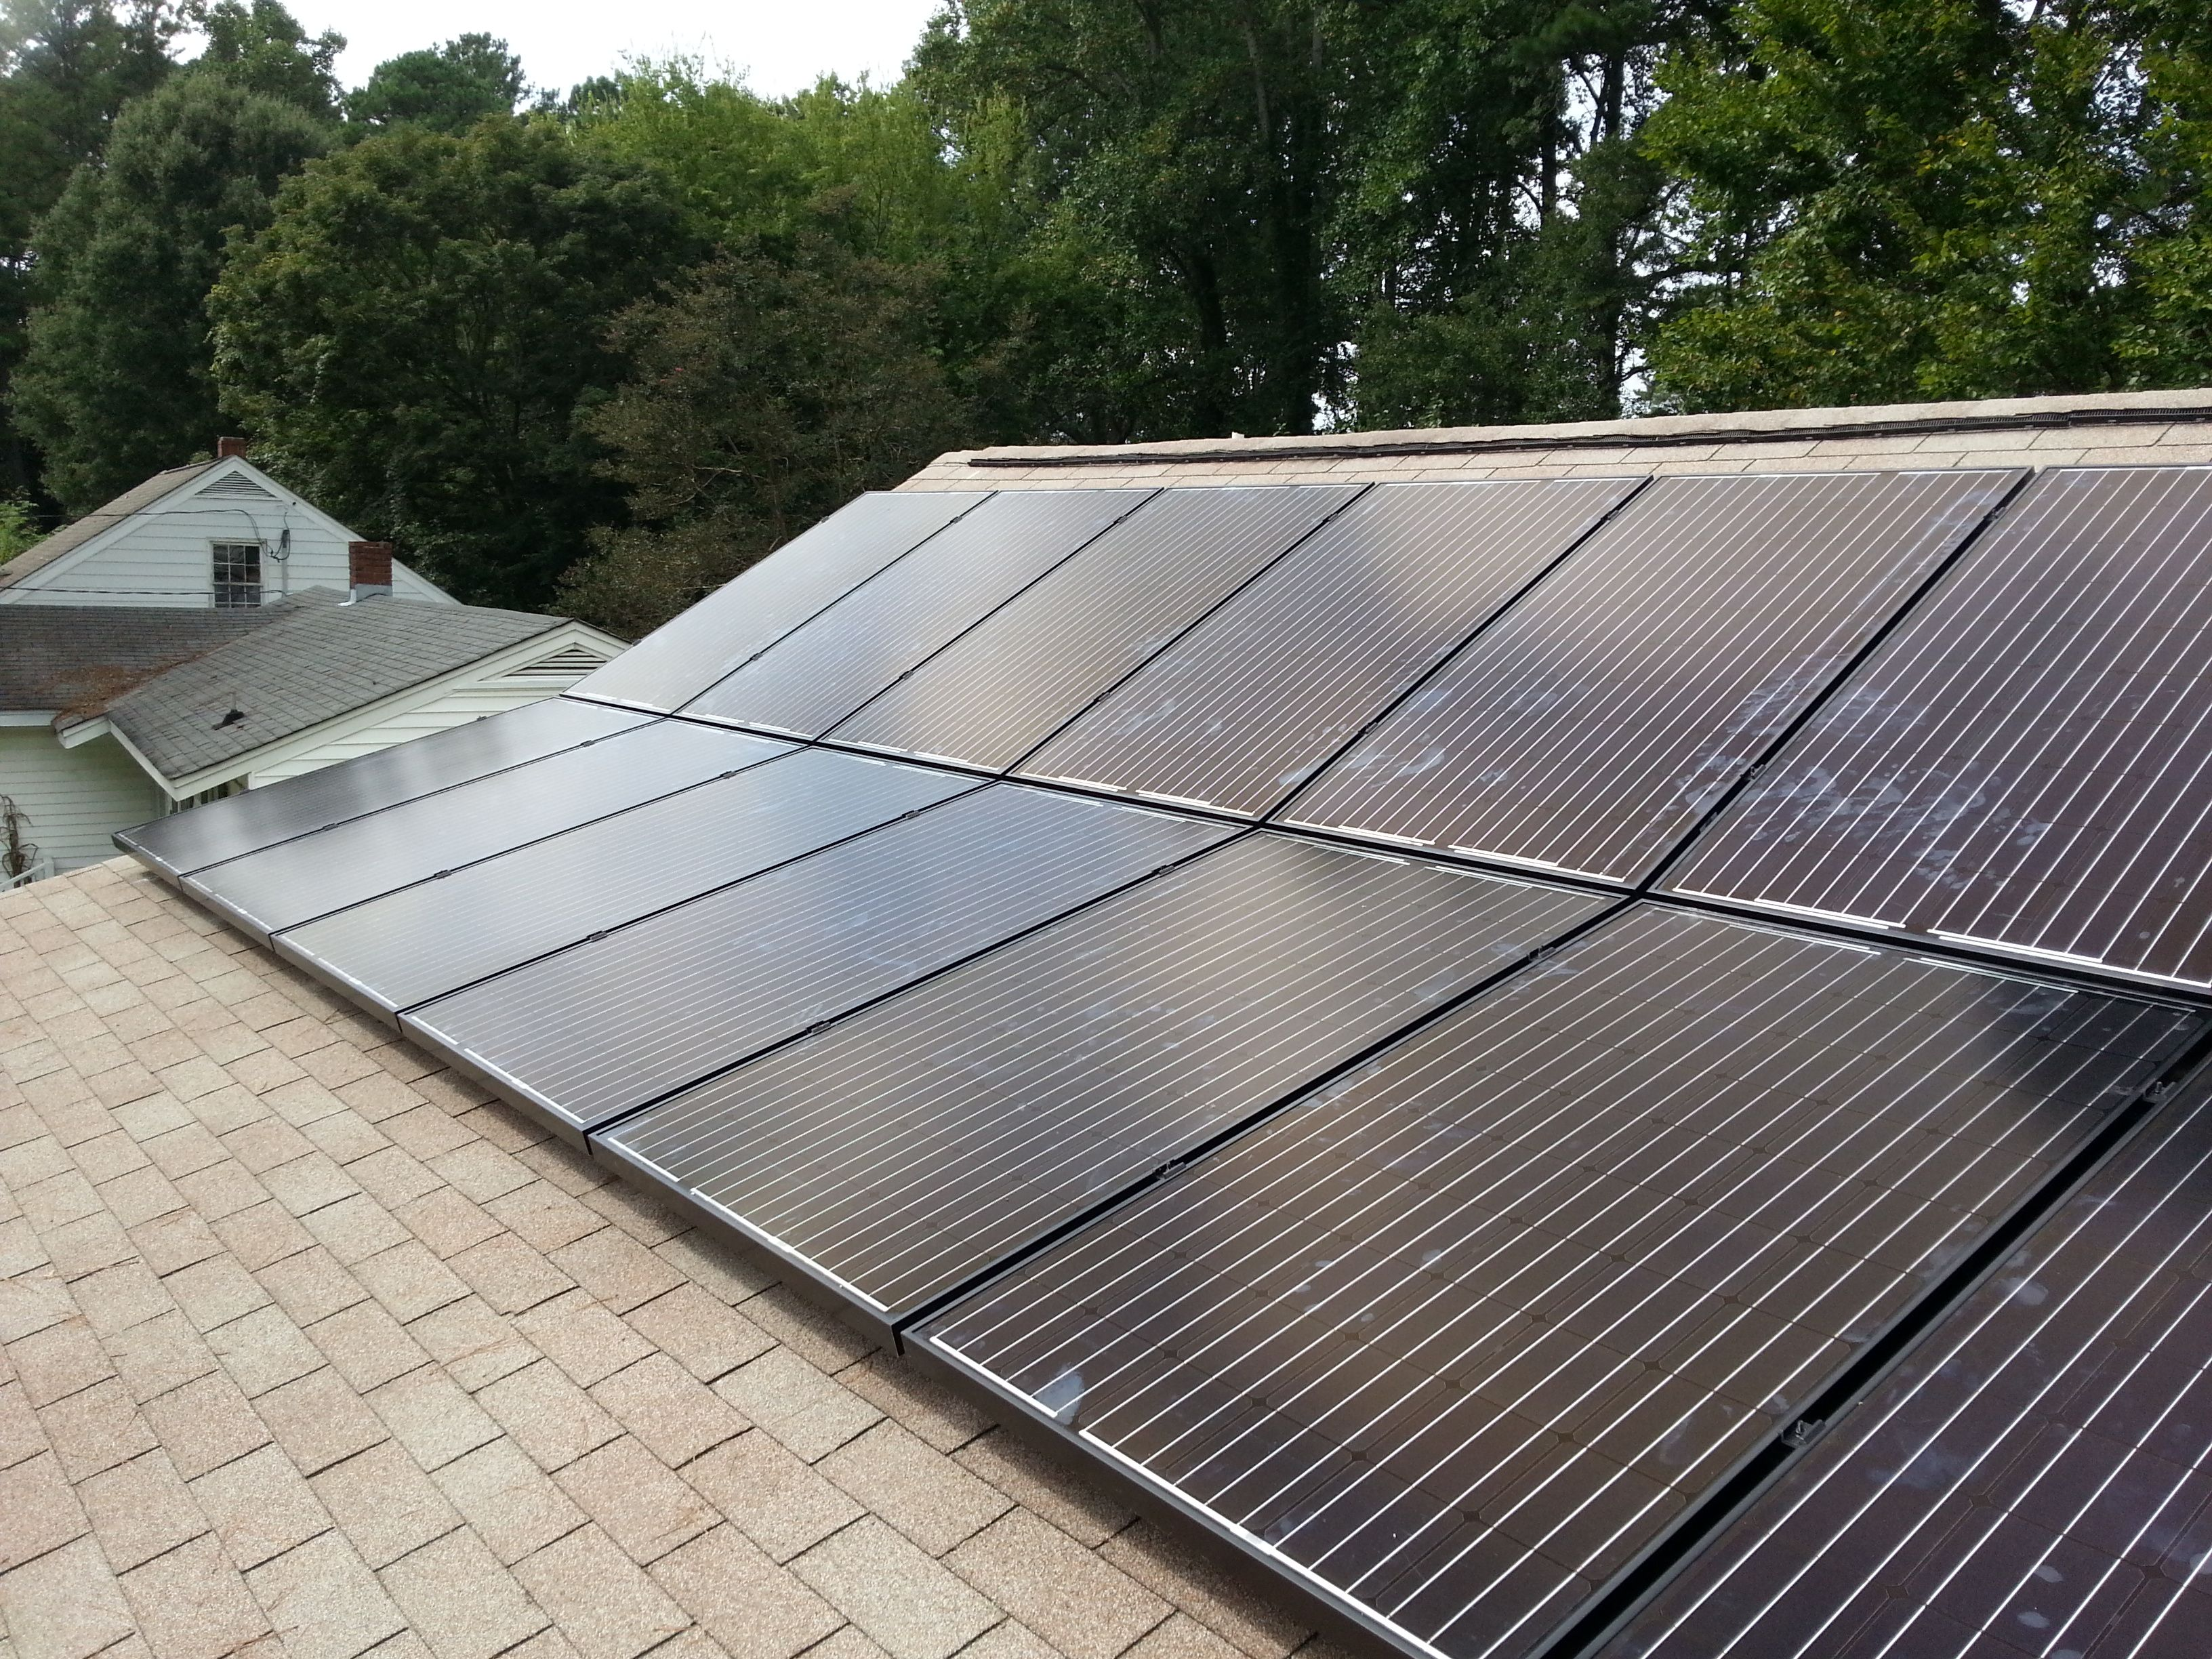 4 32 Kw Solar Pv System Installed On A House In Raleigh Nc Roof Solar Panel Solar Panels Solar